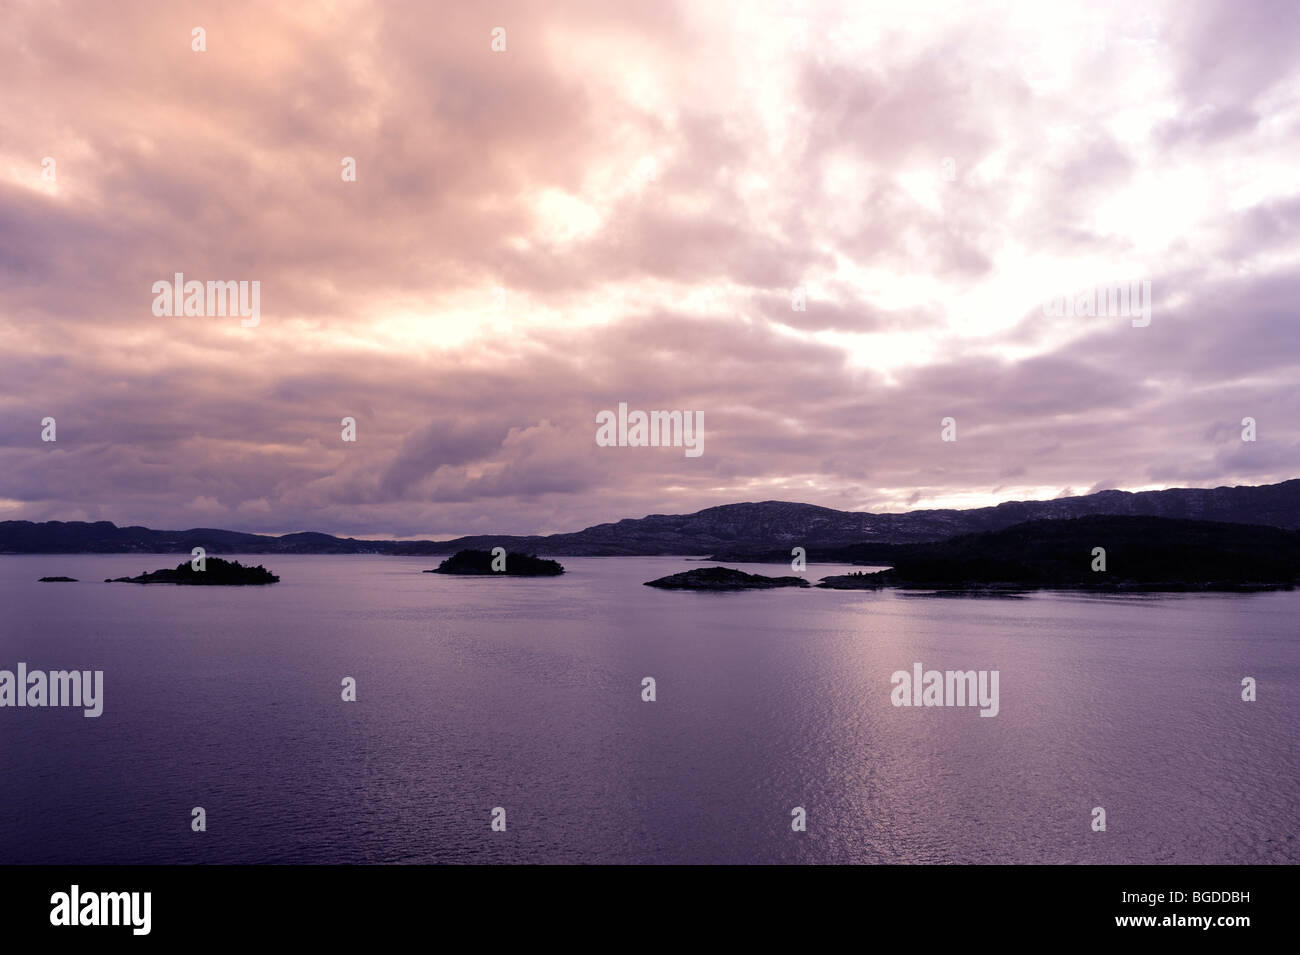 Fjord landscape in the twilight at Bergen, Norway, Scandinavia, Northern Europe - Stock Image